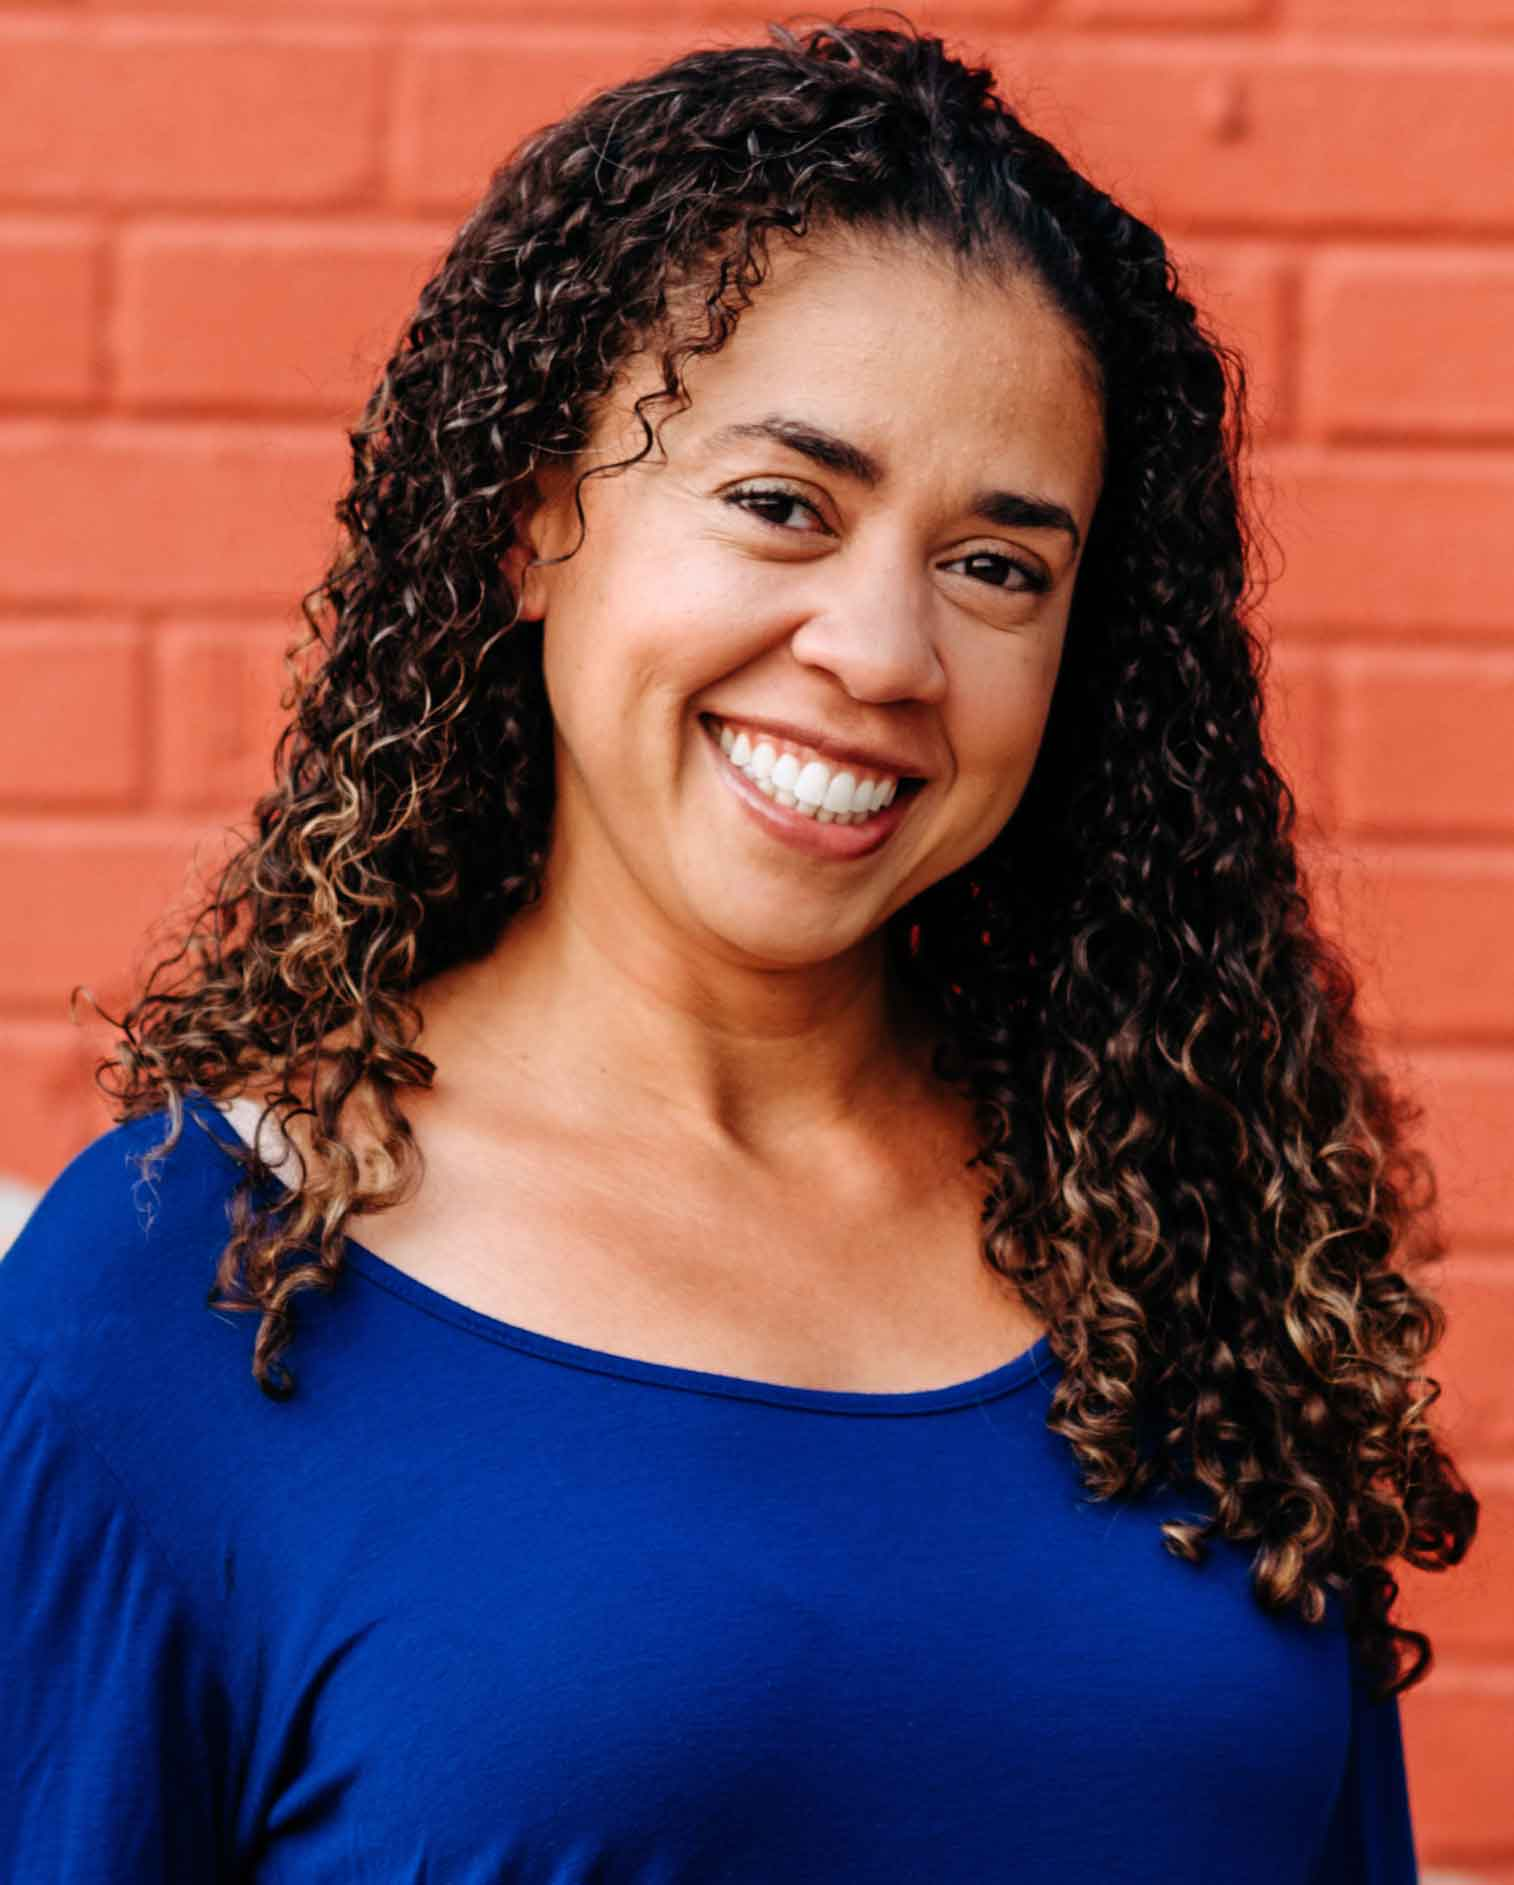 Aisha Rios, PhD, Founder and Learning and Change Strategist at Coactive Change